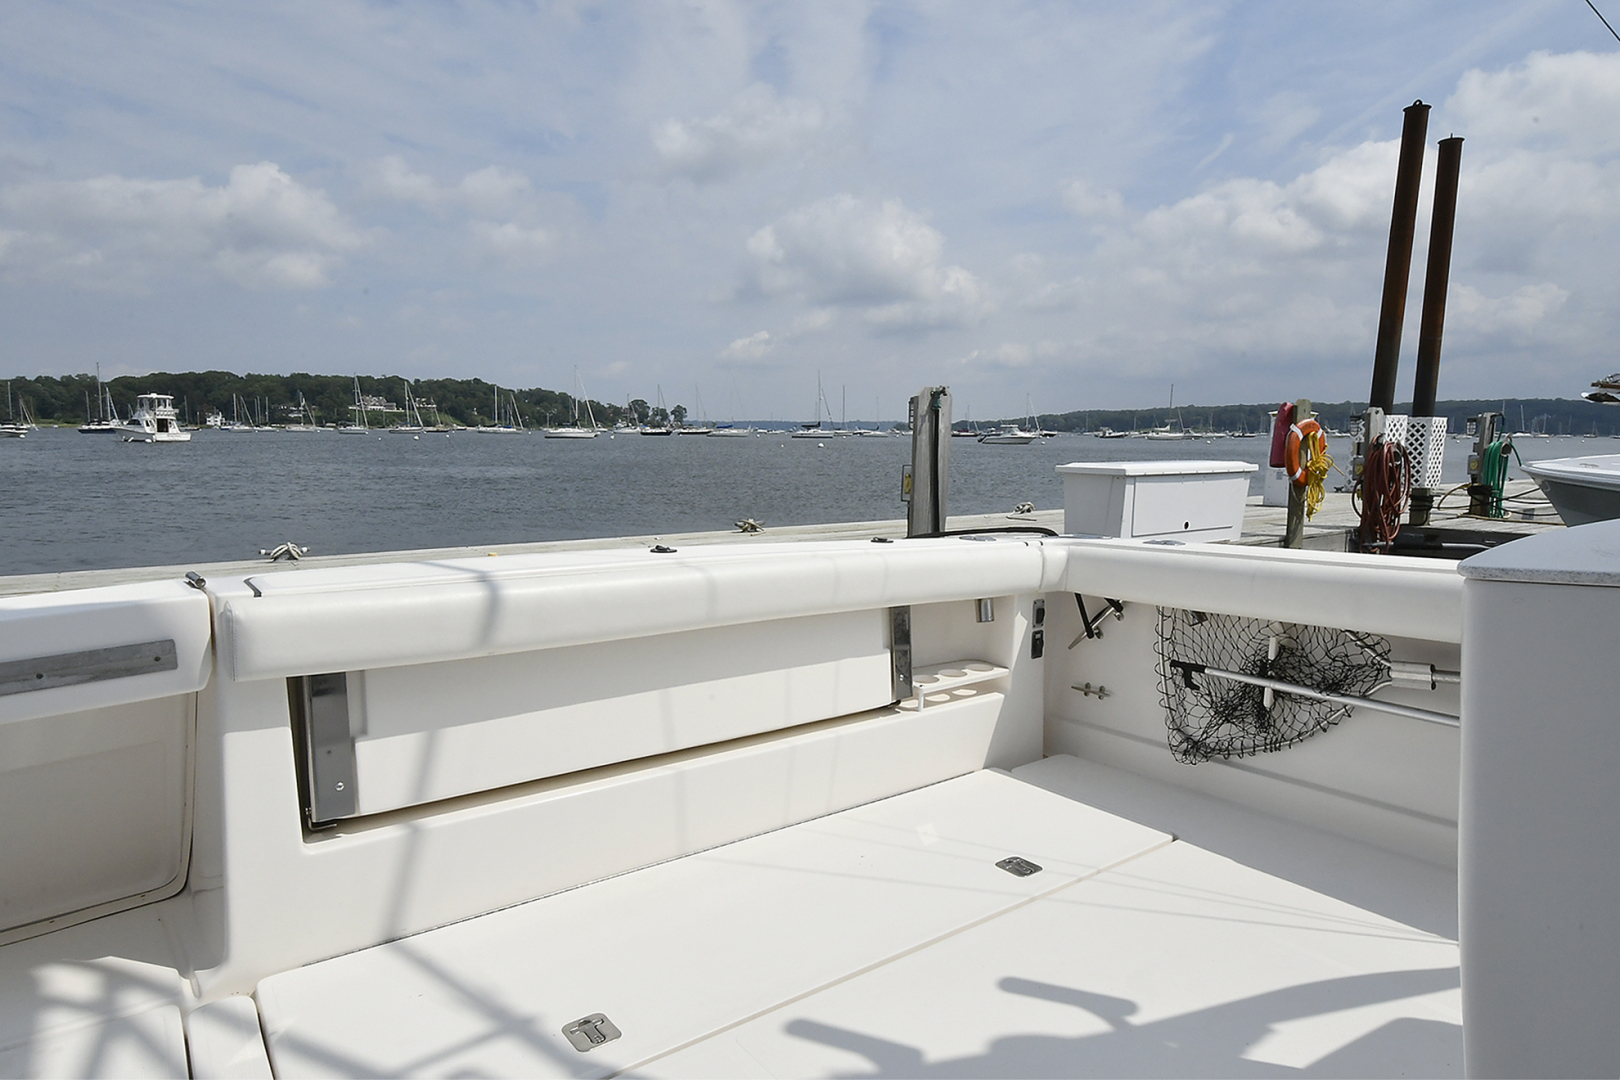 Tiara-3800 Open 2003-Catch 22 Oyster Bay-New York-United States-Cockpit-1224908 | Thumbnail